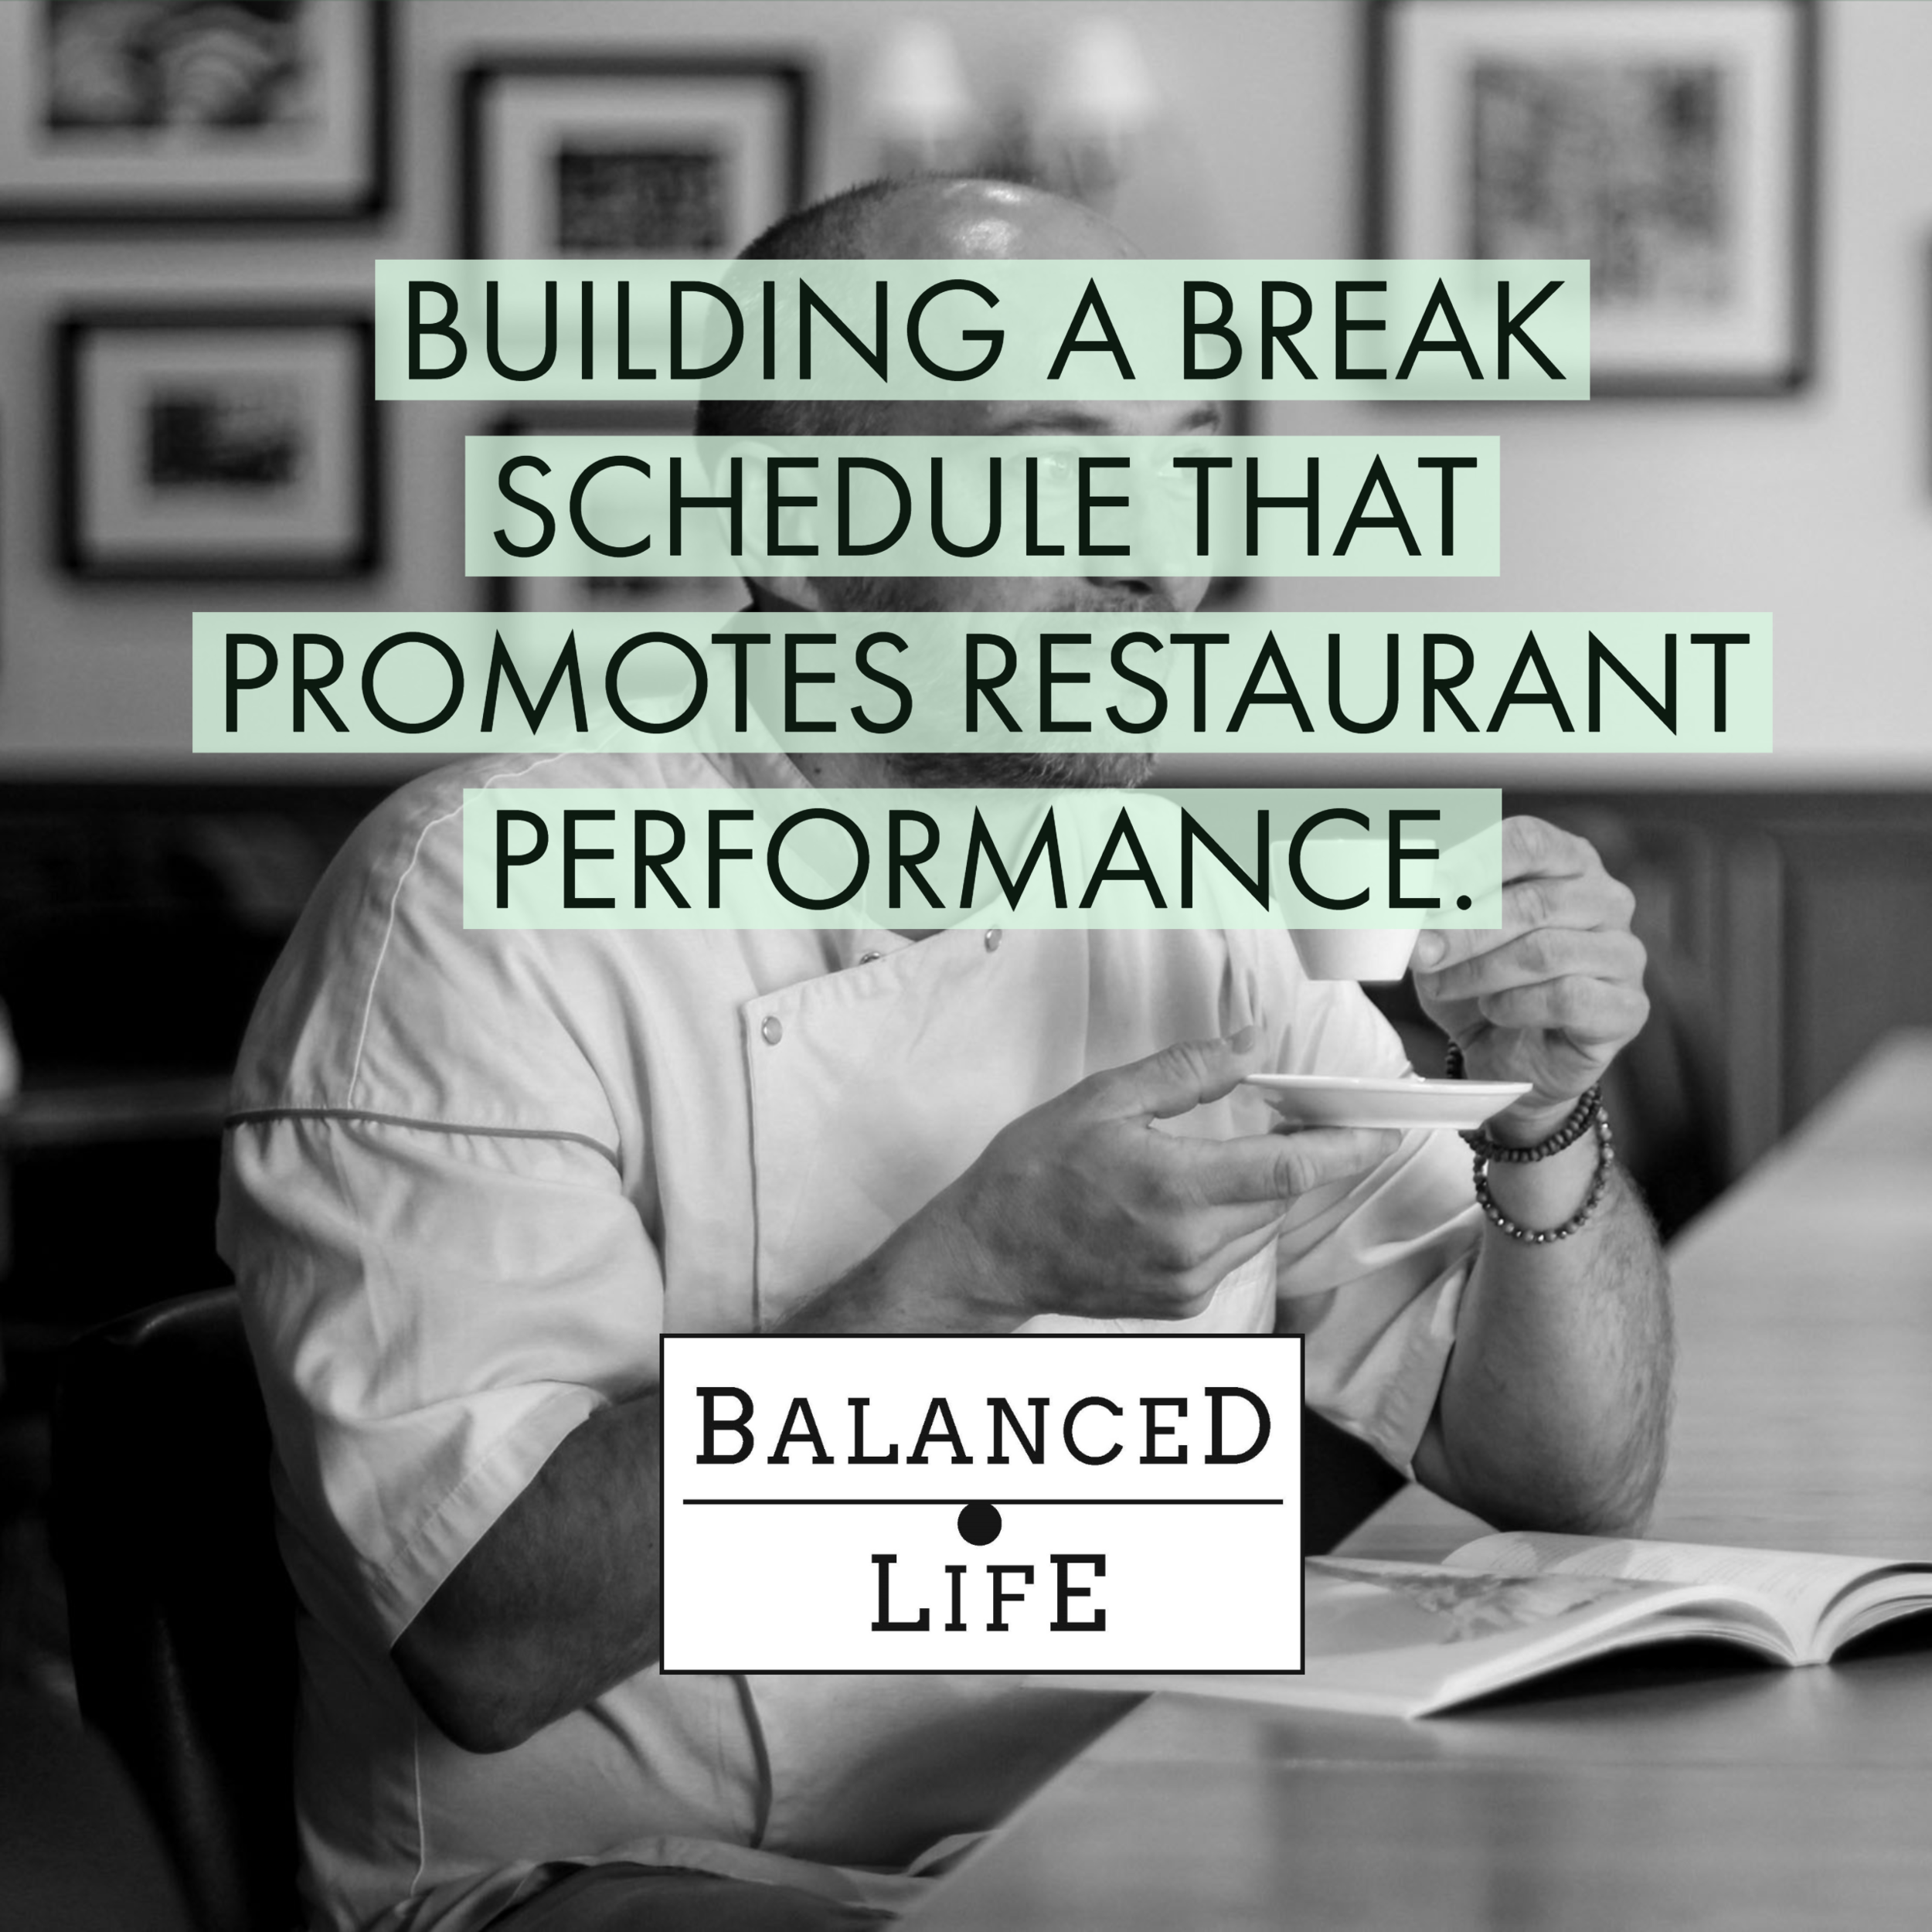 BUILDING A BREAK SCHEDULE THAT PROMOTES RESTAURANT PERFORMANCE.